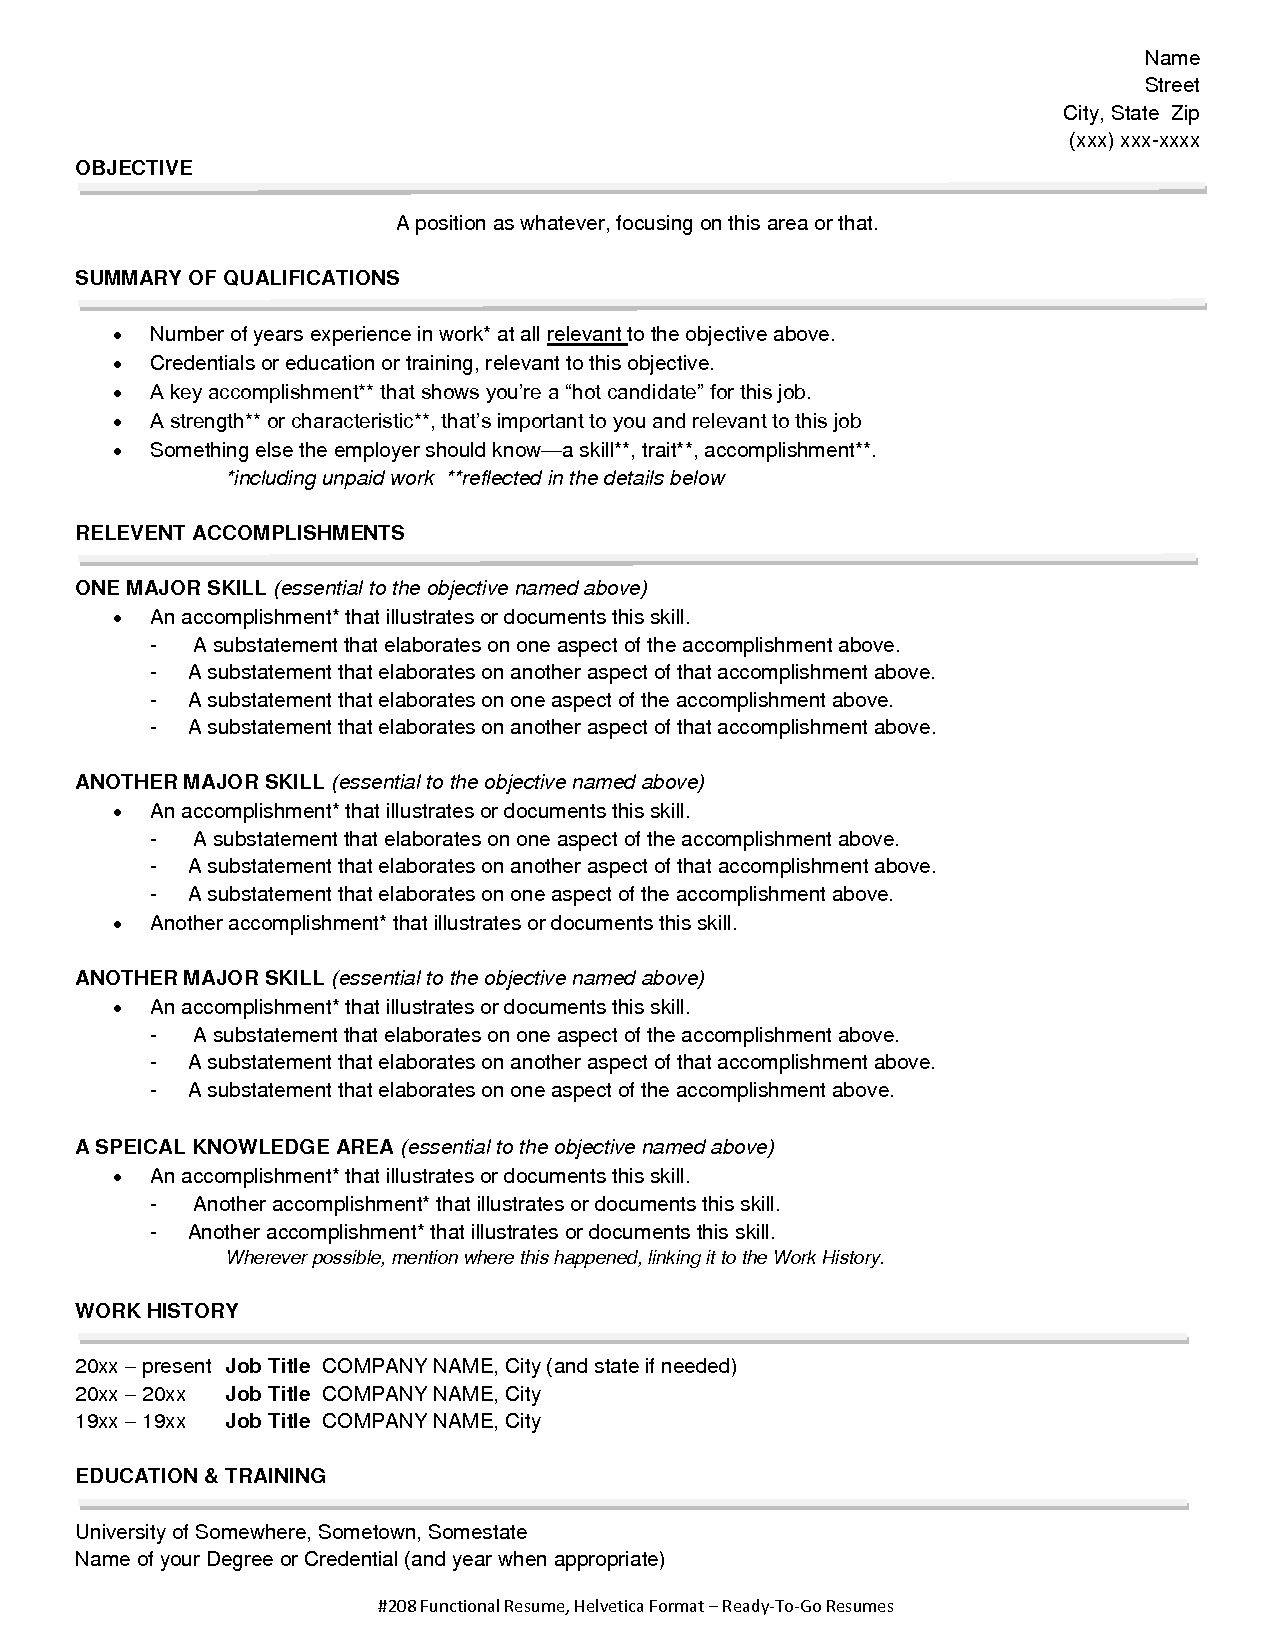 Career Resume Functional Style Resume Sample Functional Resume Style 1